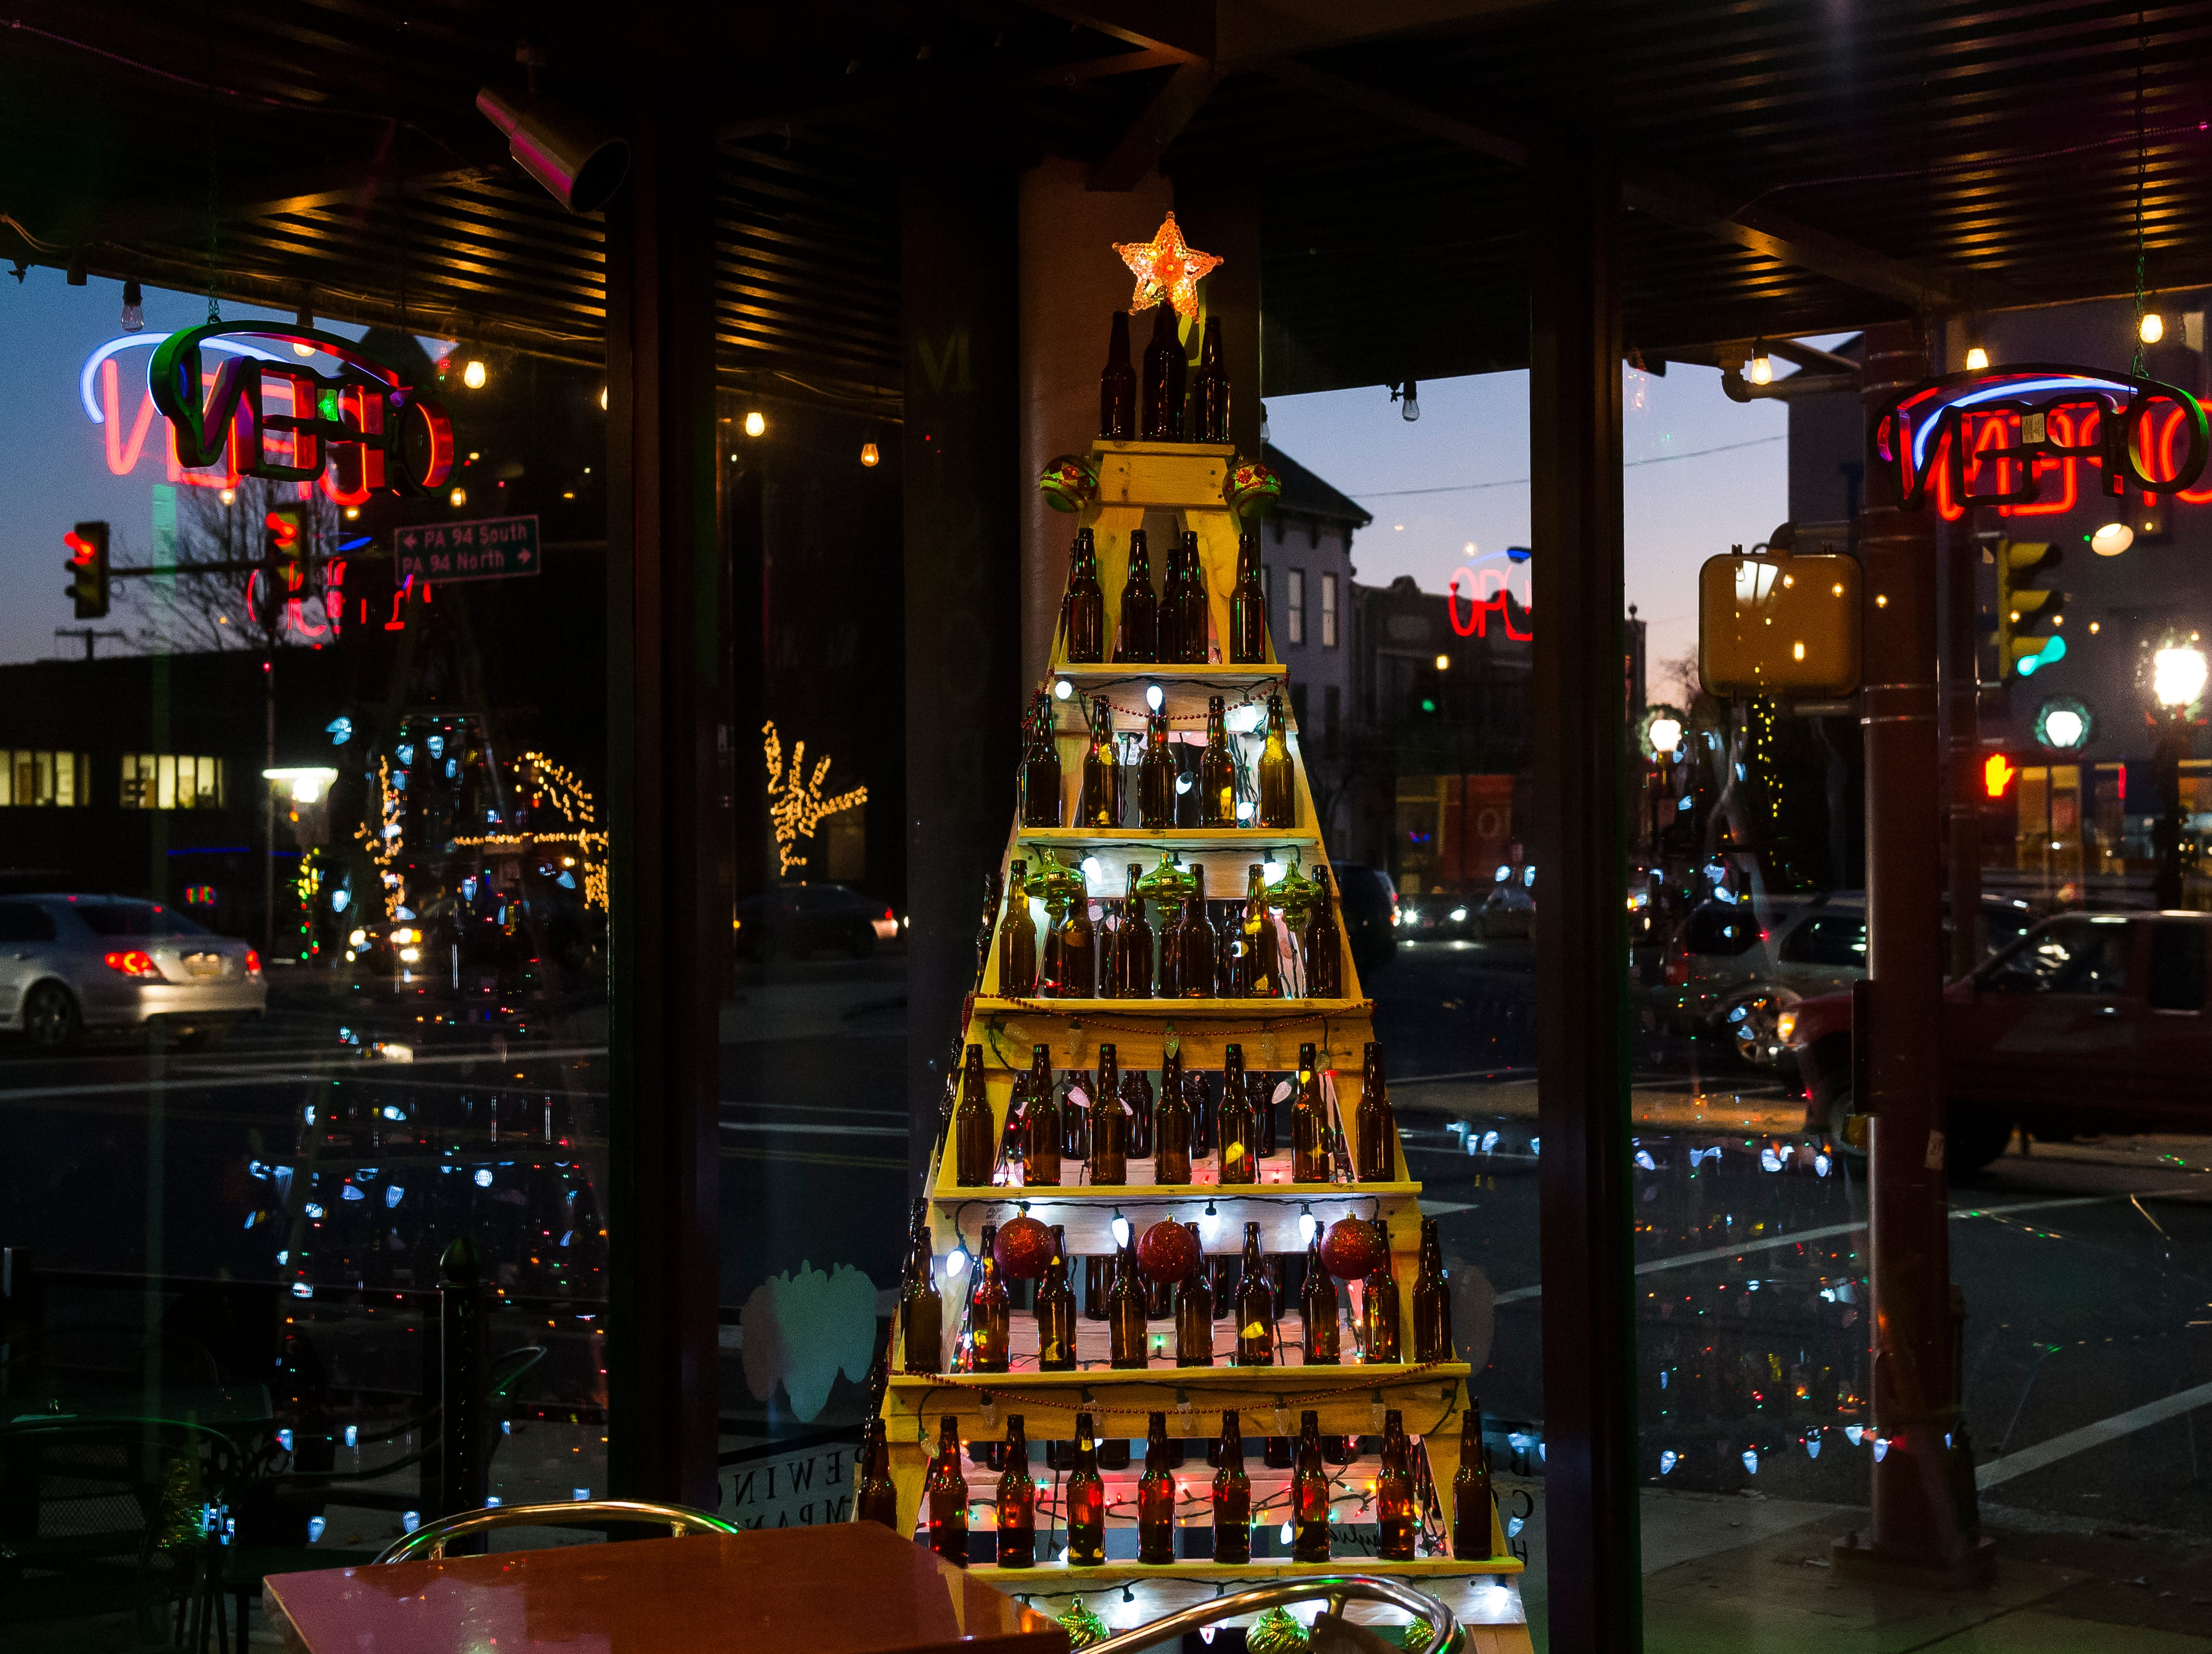 Miscreation Brewing Co. located at 6 Center Square. Visit mainstreethanover.org for details about Christmas Tree Wars.